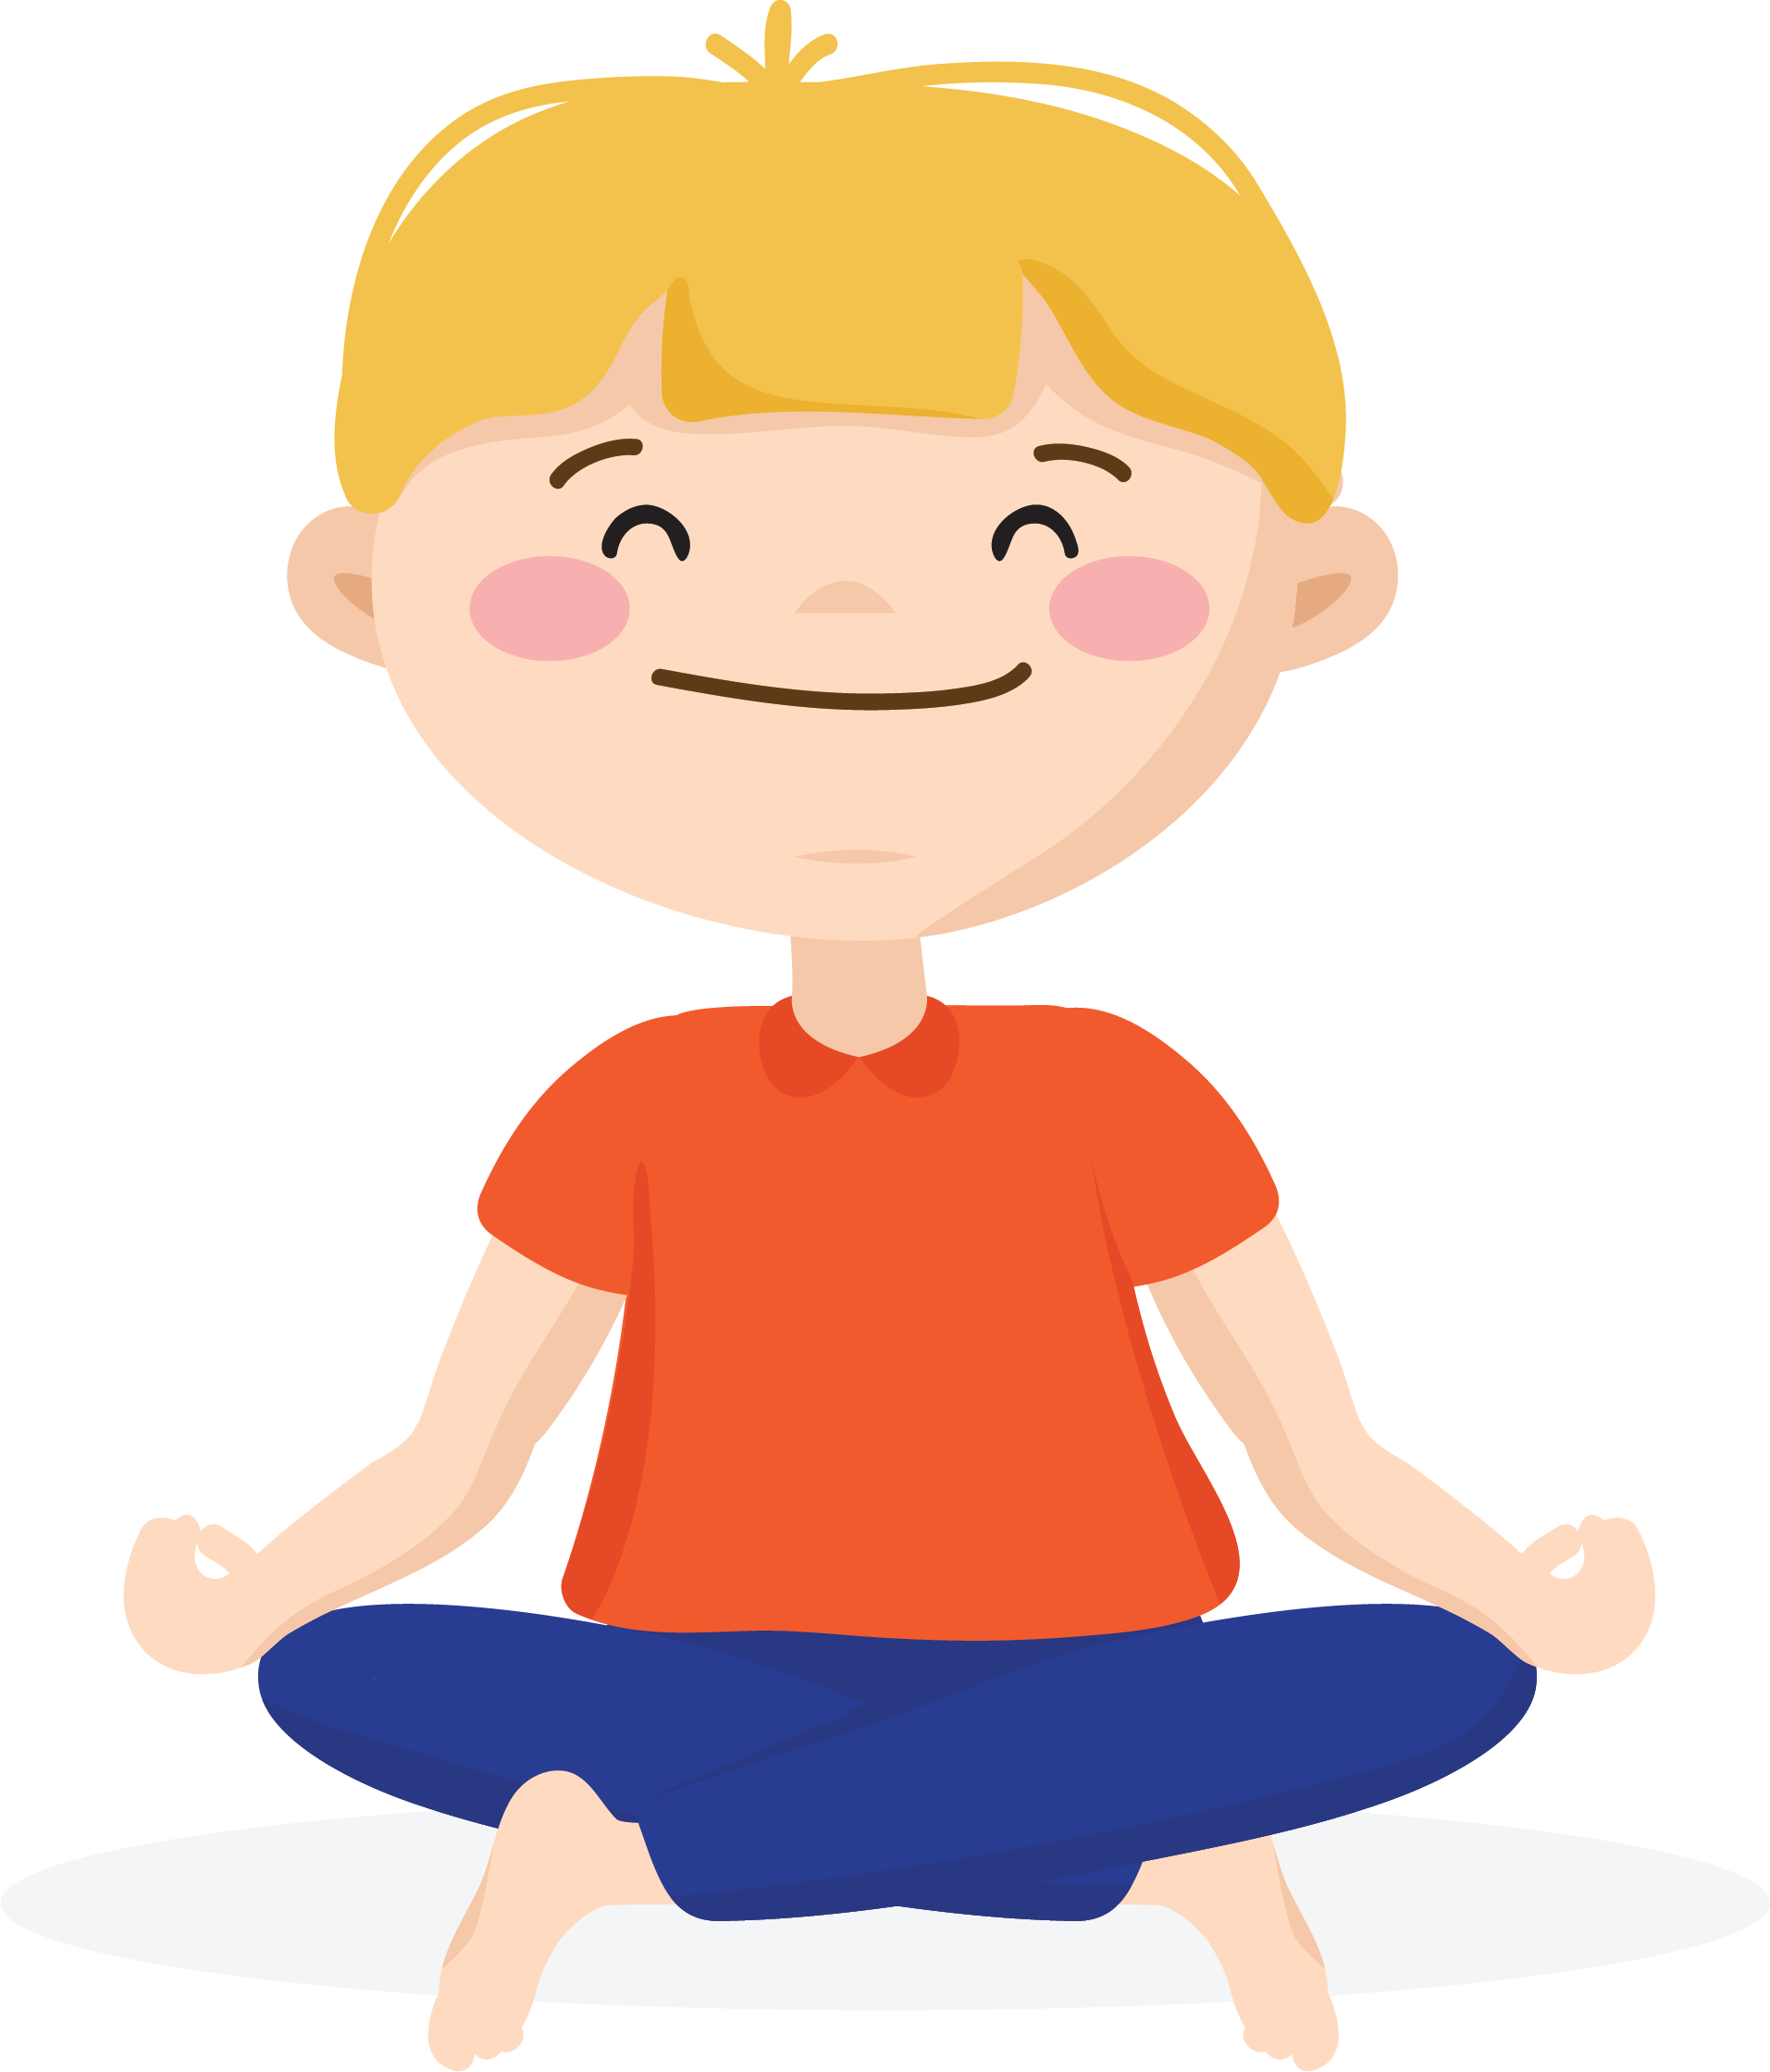 Breathe clipart kid. Hd mindfulness breathing techniques